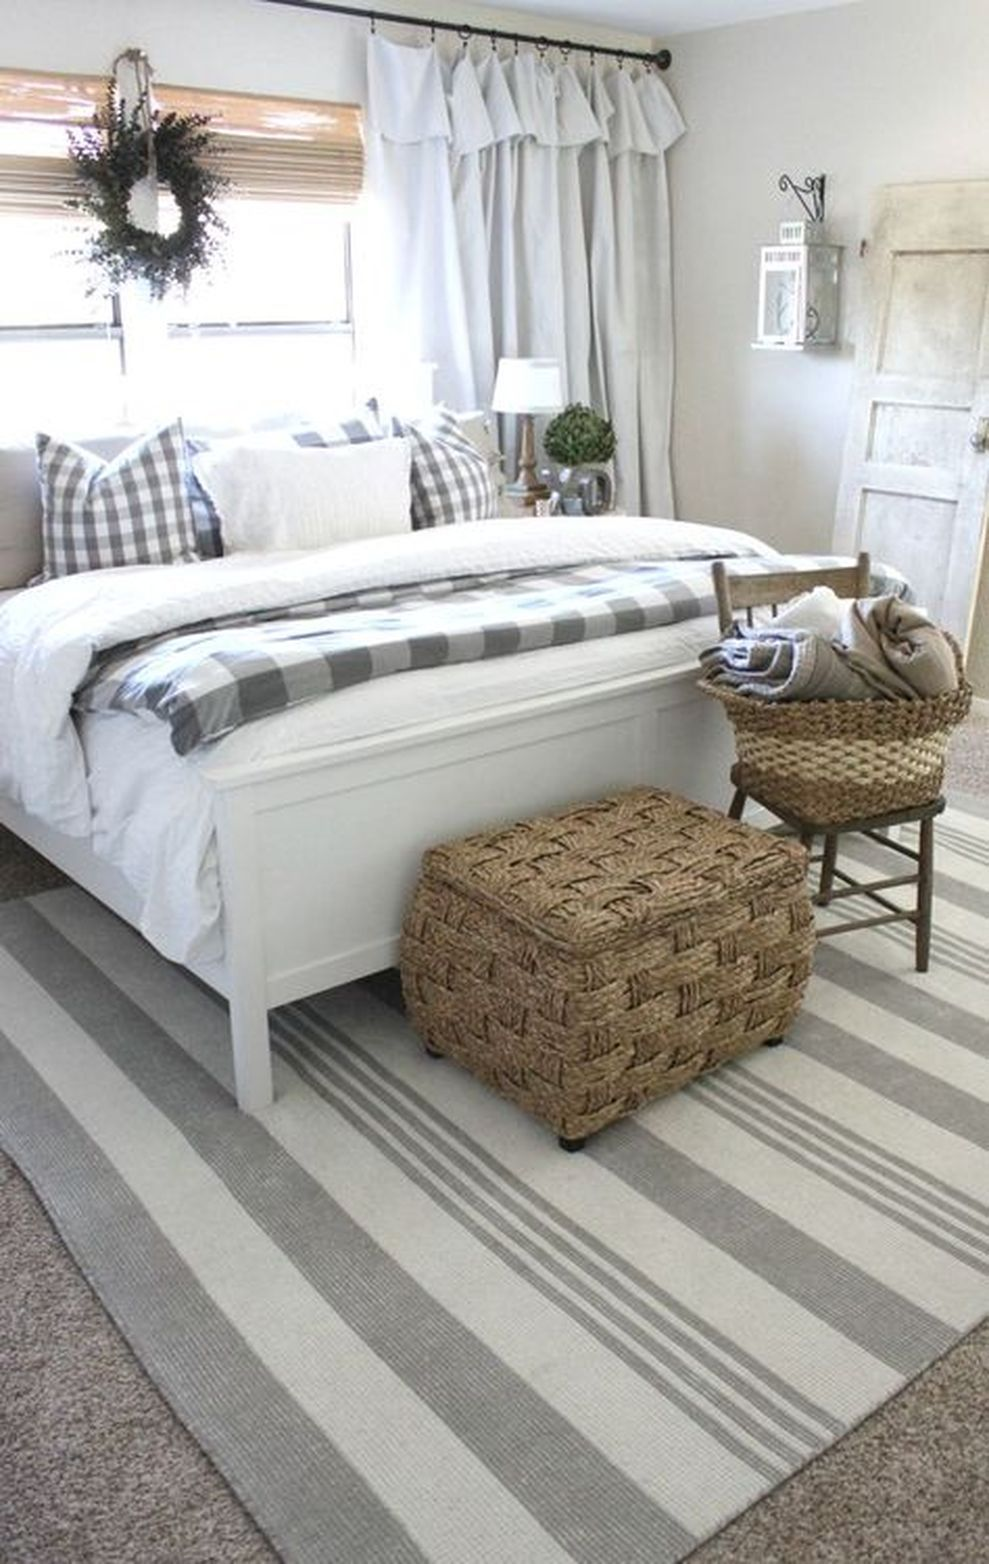 Master bedroom decorating ideas gray  Gorgeous Farmhouse Master Bedroom Decorating Ideas   Home Dec